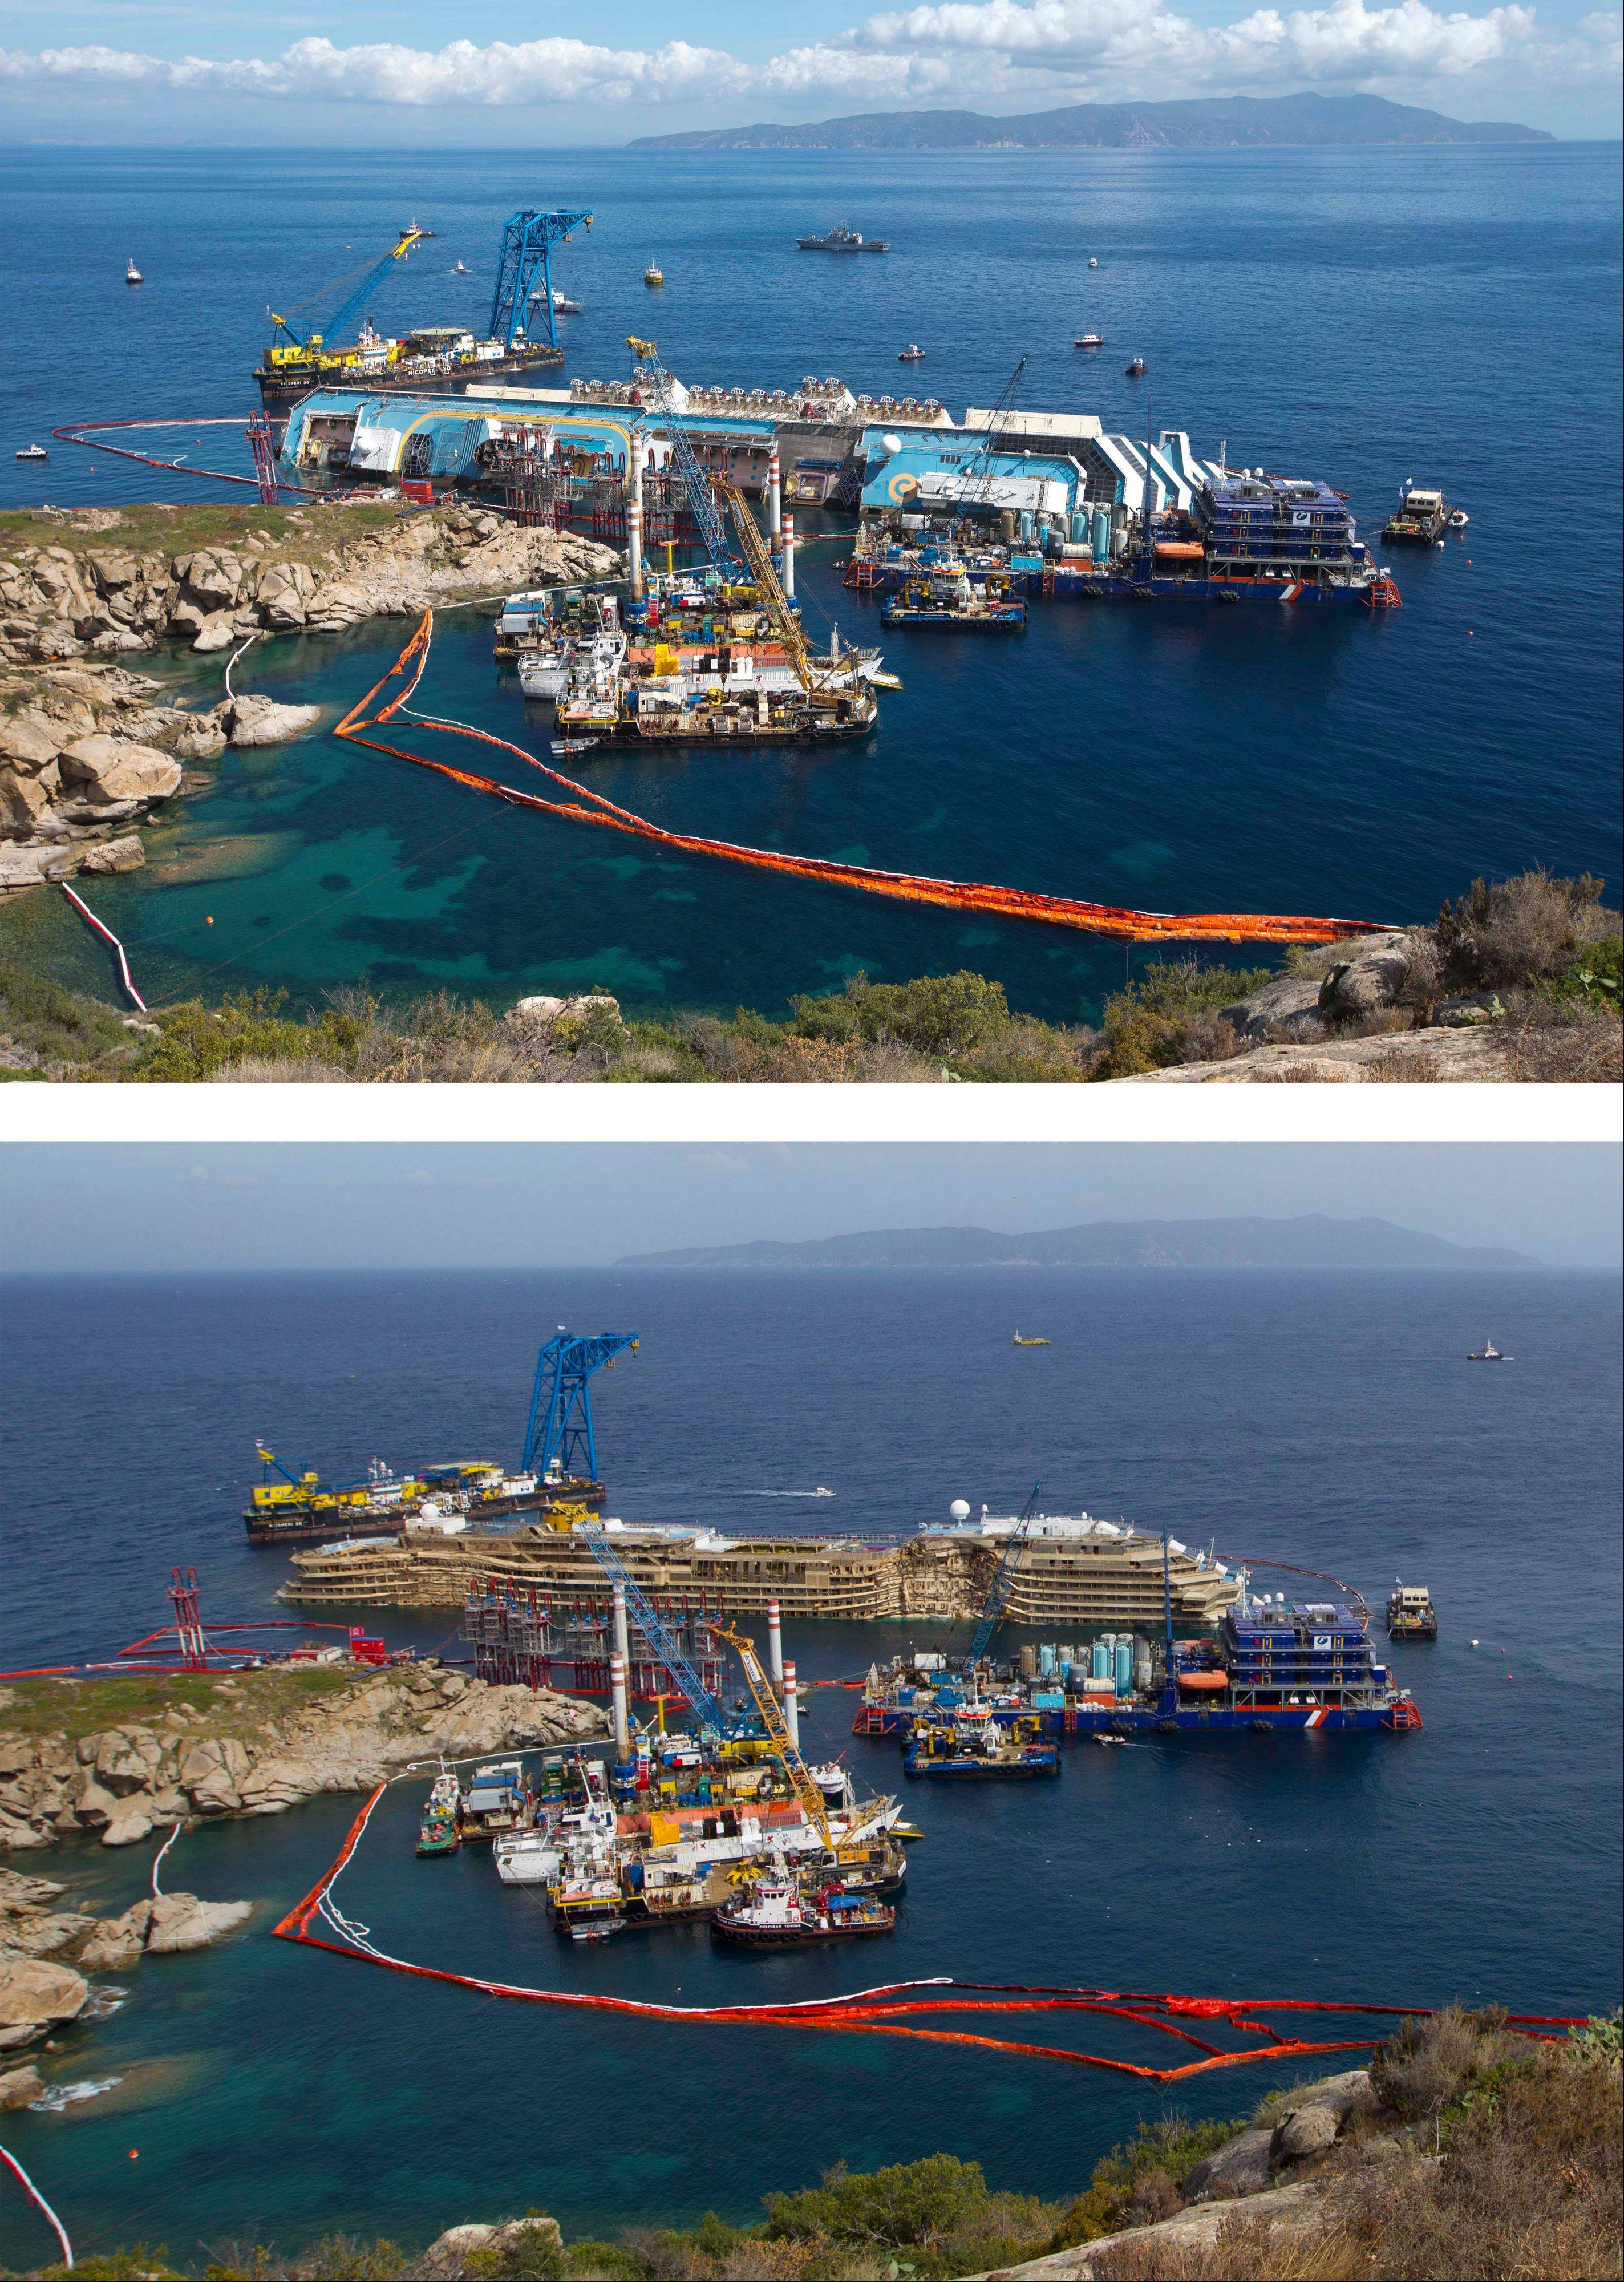 This two-photo combo shows the Costa Concordia ship on the Tuscan Island of Giglio, Italy. Top photo was taken on Monday, Sept. 16, 2013 while bottom photo was taken on Tuesday, Sept. 17, 2013. Engineers declared success on Tuesday as the Costa Concordia cruise ship was pulled completely upright during a complicated, 19-hour operation to wrench it from its side where it capsized last year off Tuscany, an unprecedented feat that sets the stage for it to be towed away next year.